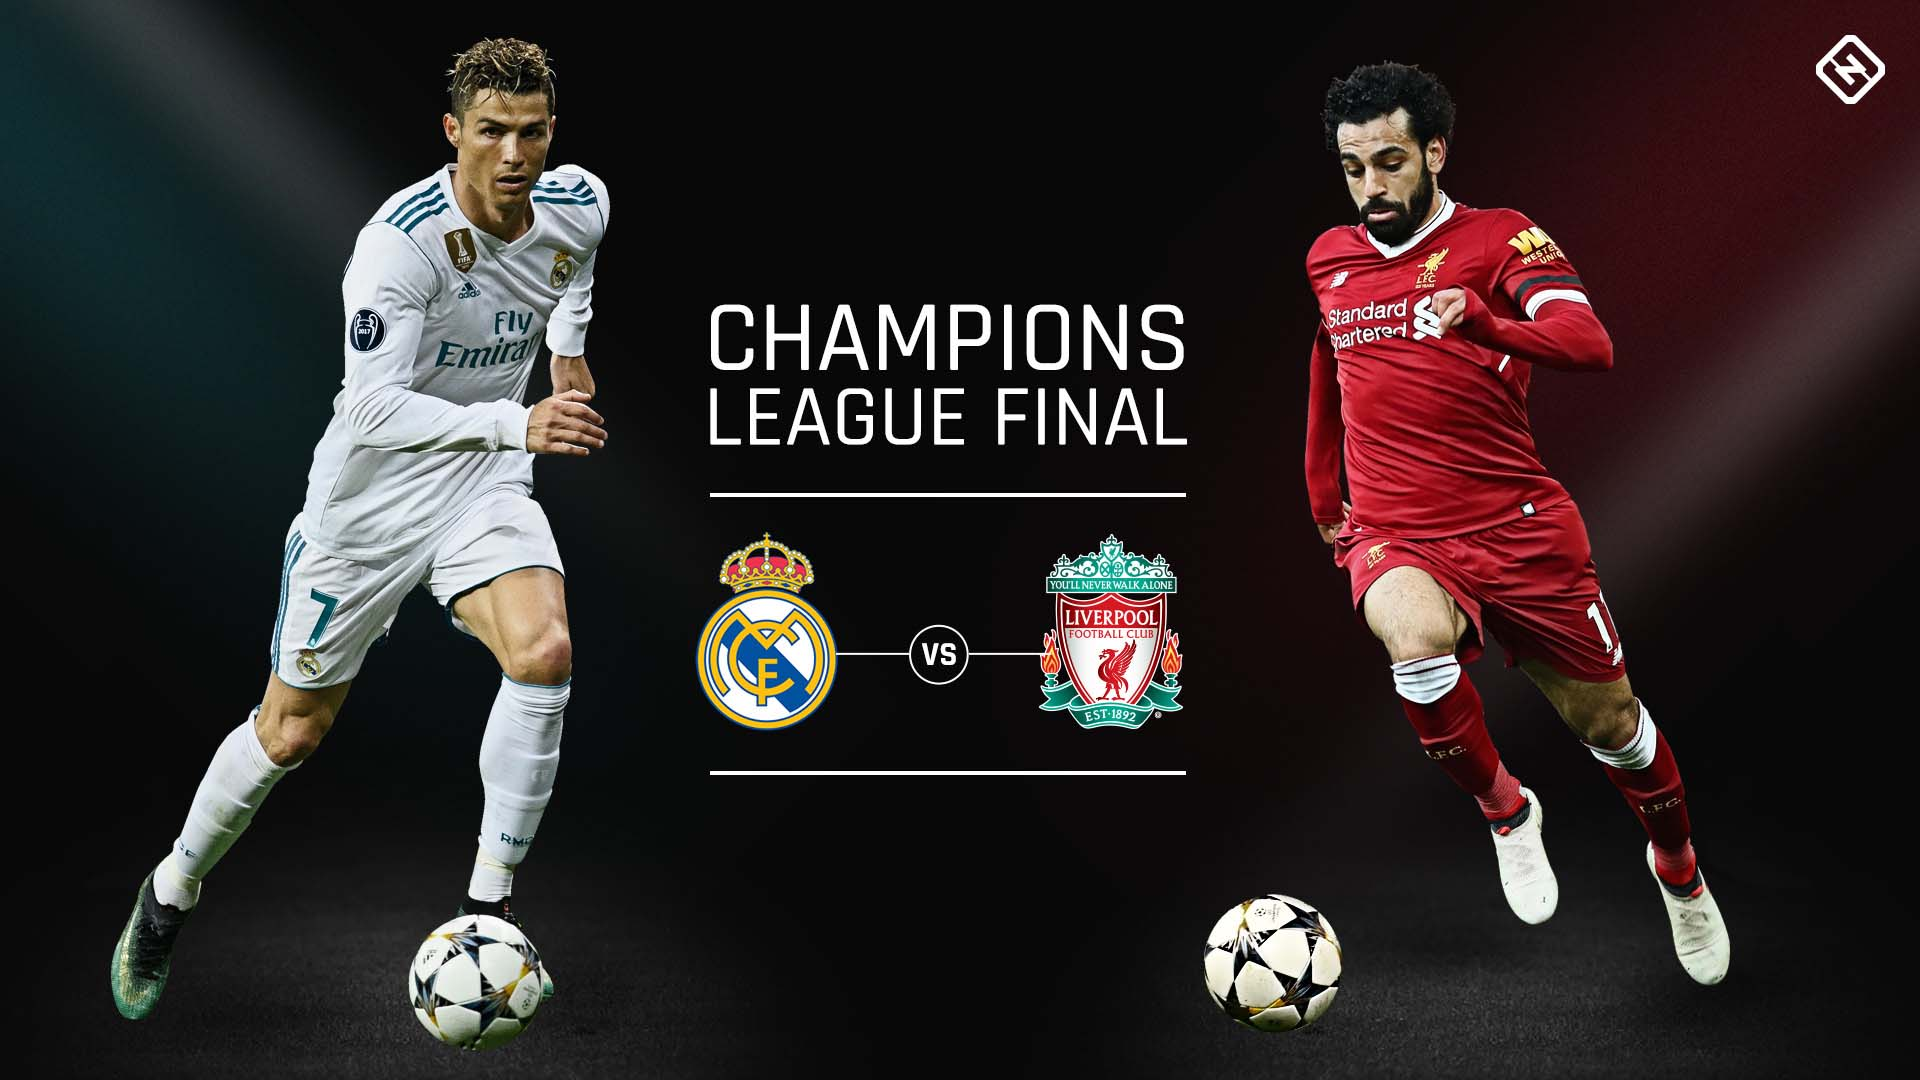 Championsleague Finale Tv